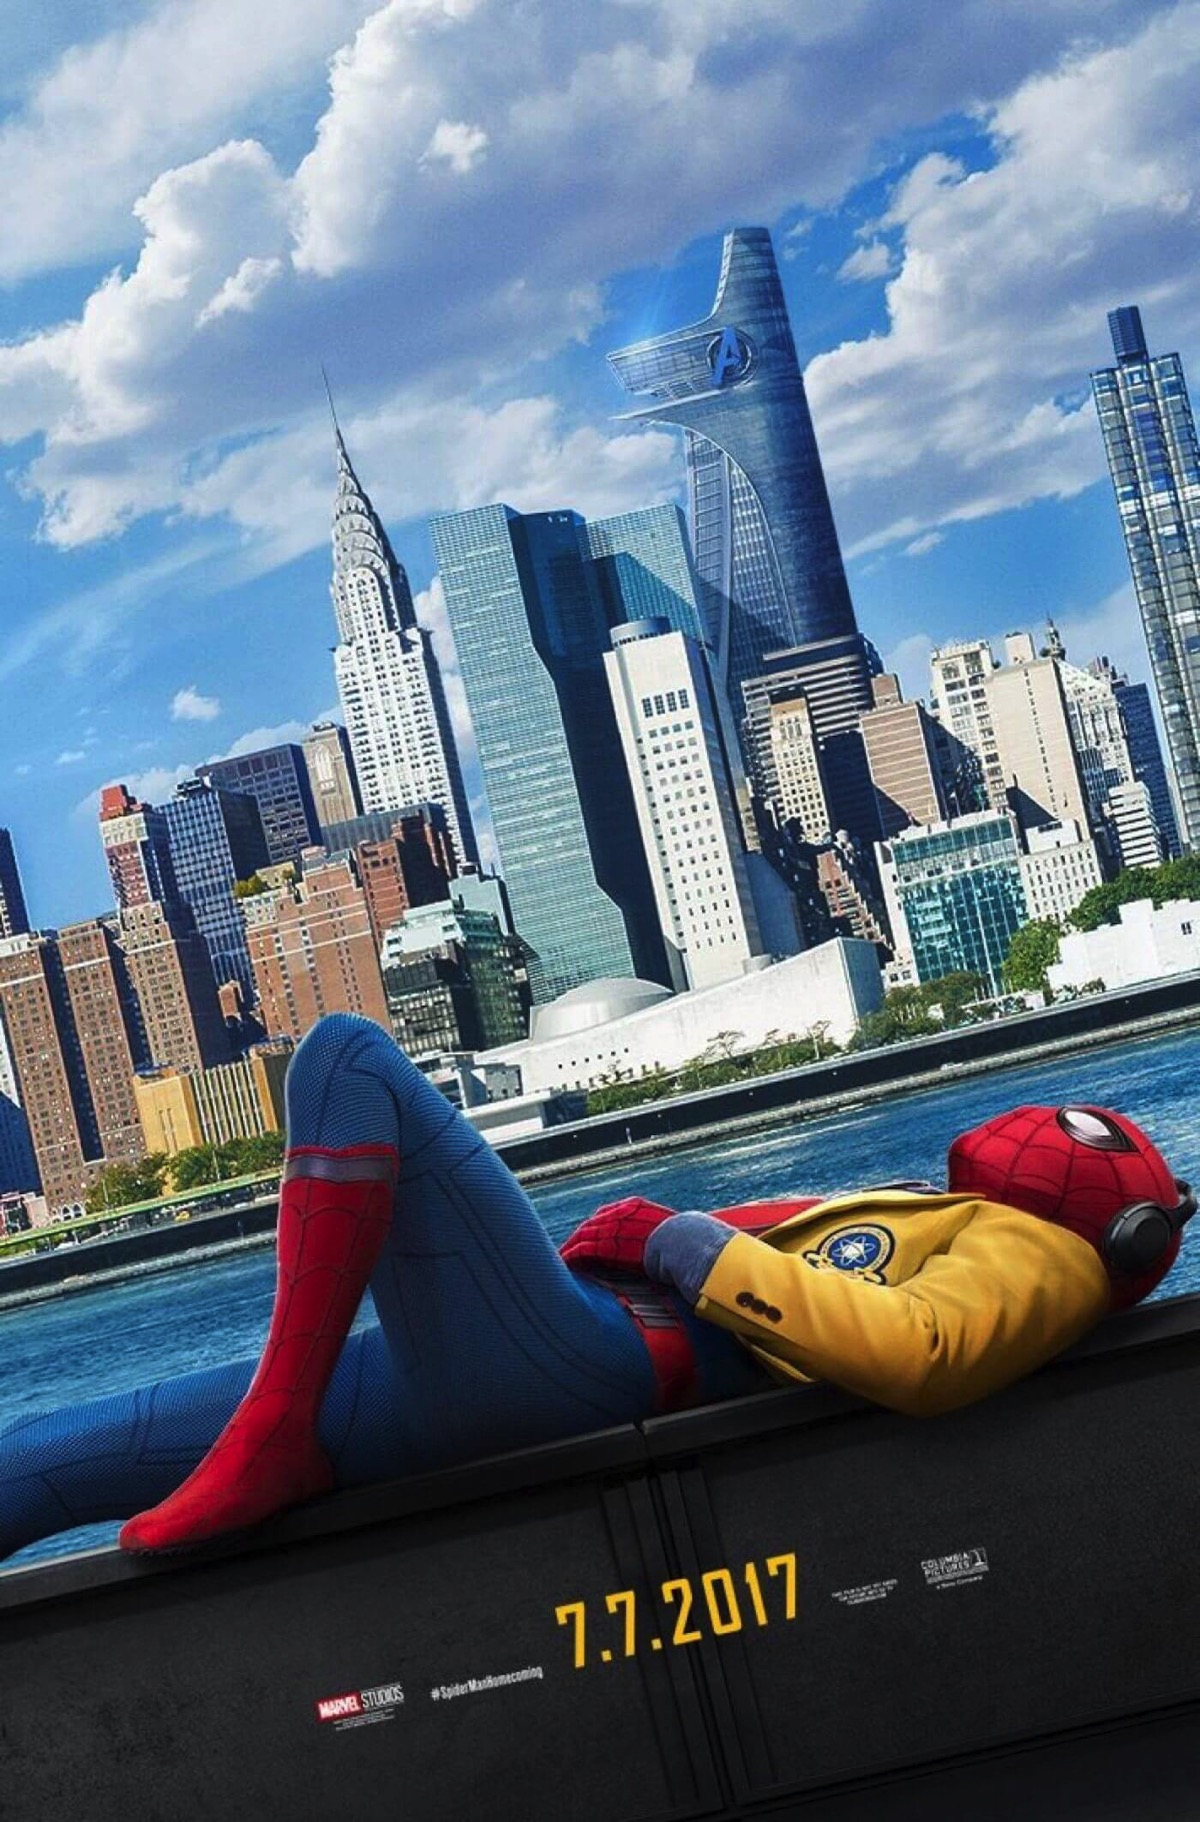 spider-man-homecoming-poster.jpeg